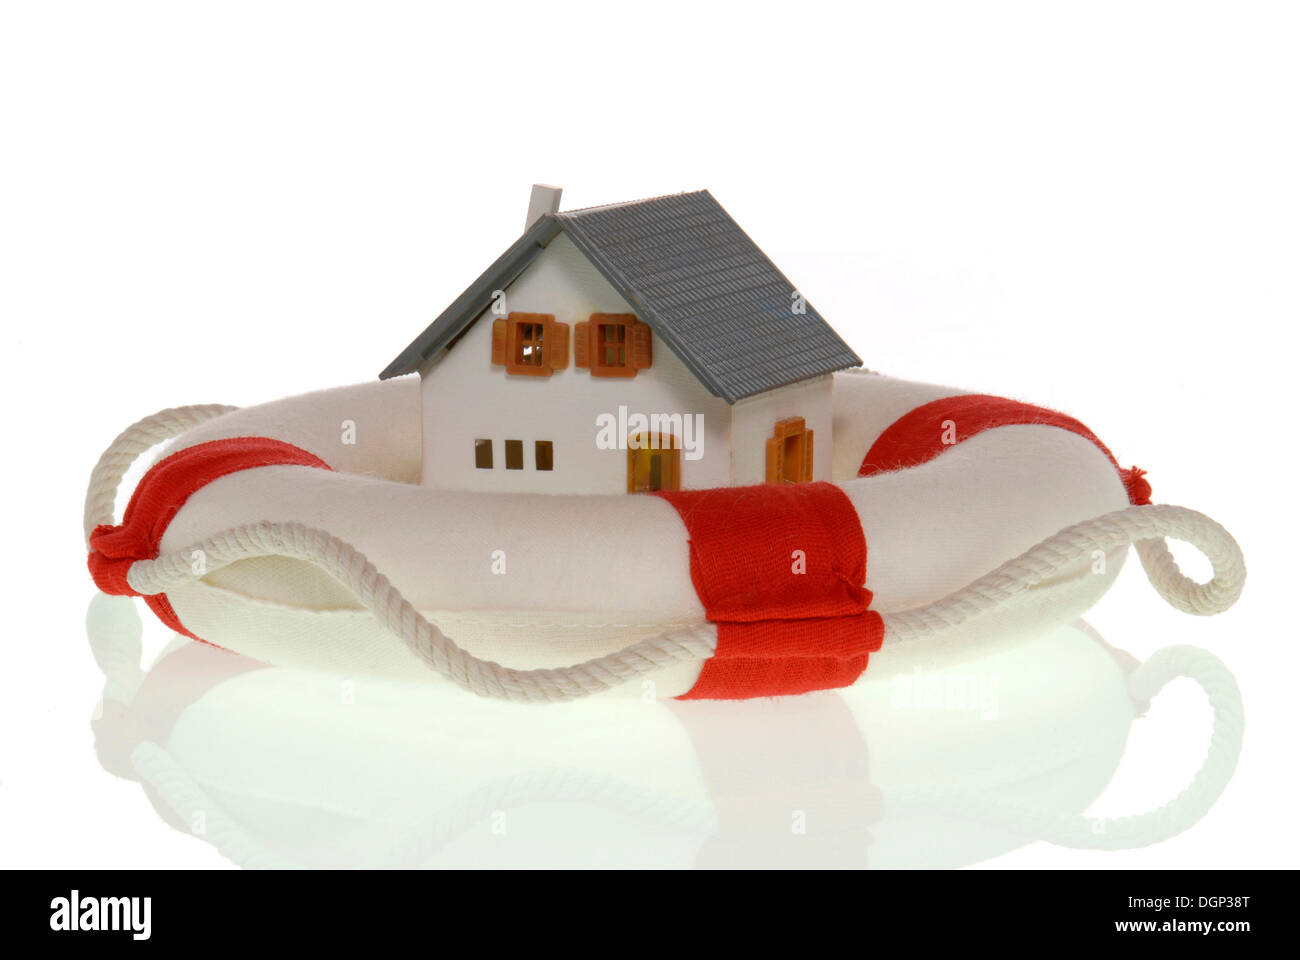 Miniature house in a life saver, symbolic image for saving homes - Stock Image